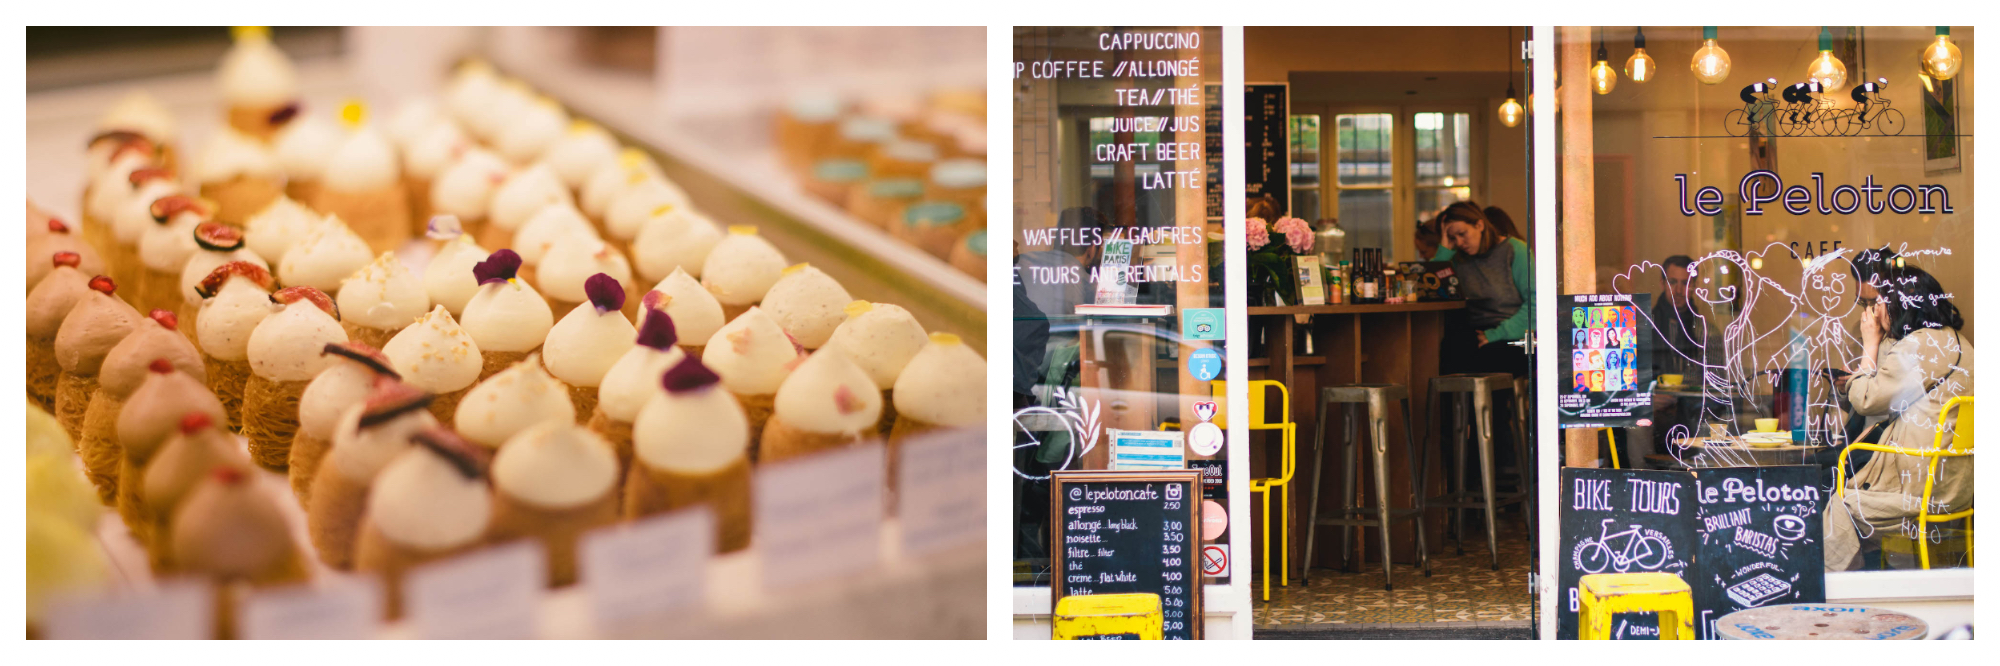 On left: cute, miniature pastries sit lined up in a shop window, each wearing a little hat of cream and dotted with a delicate morsel of fruit. On right: The popular coffee shop Le Peloton in Paris' Le Marias neighbhorhood opens its doors into the inviting, warm interior accented by the yellow furniture.